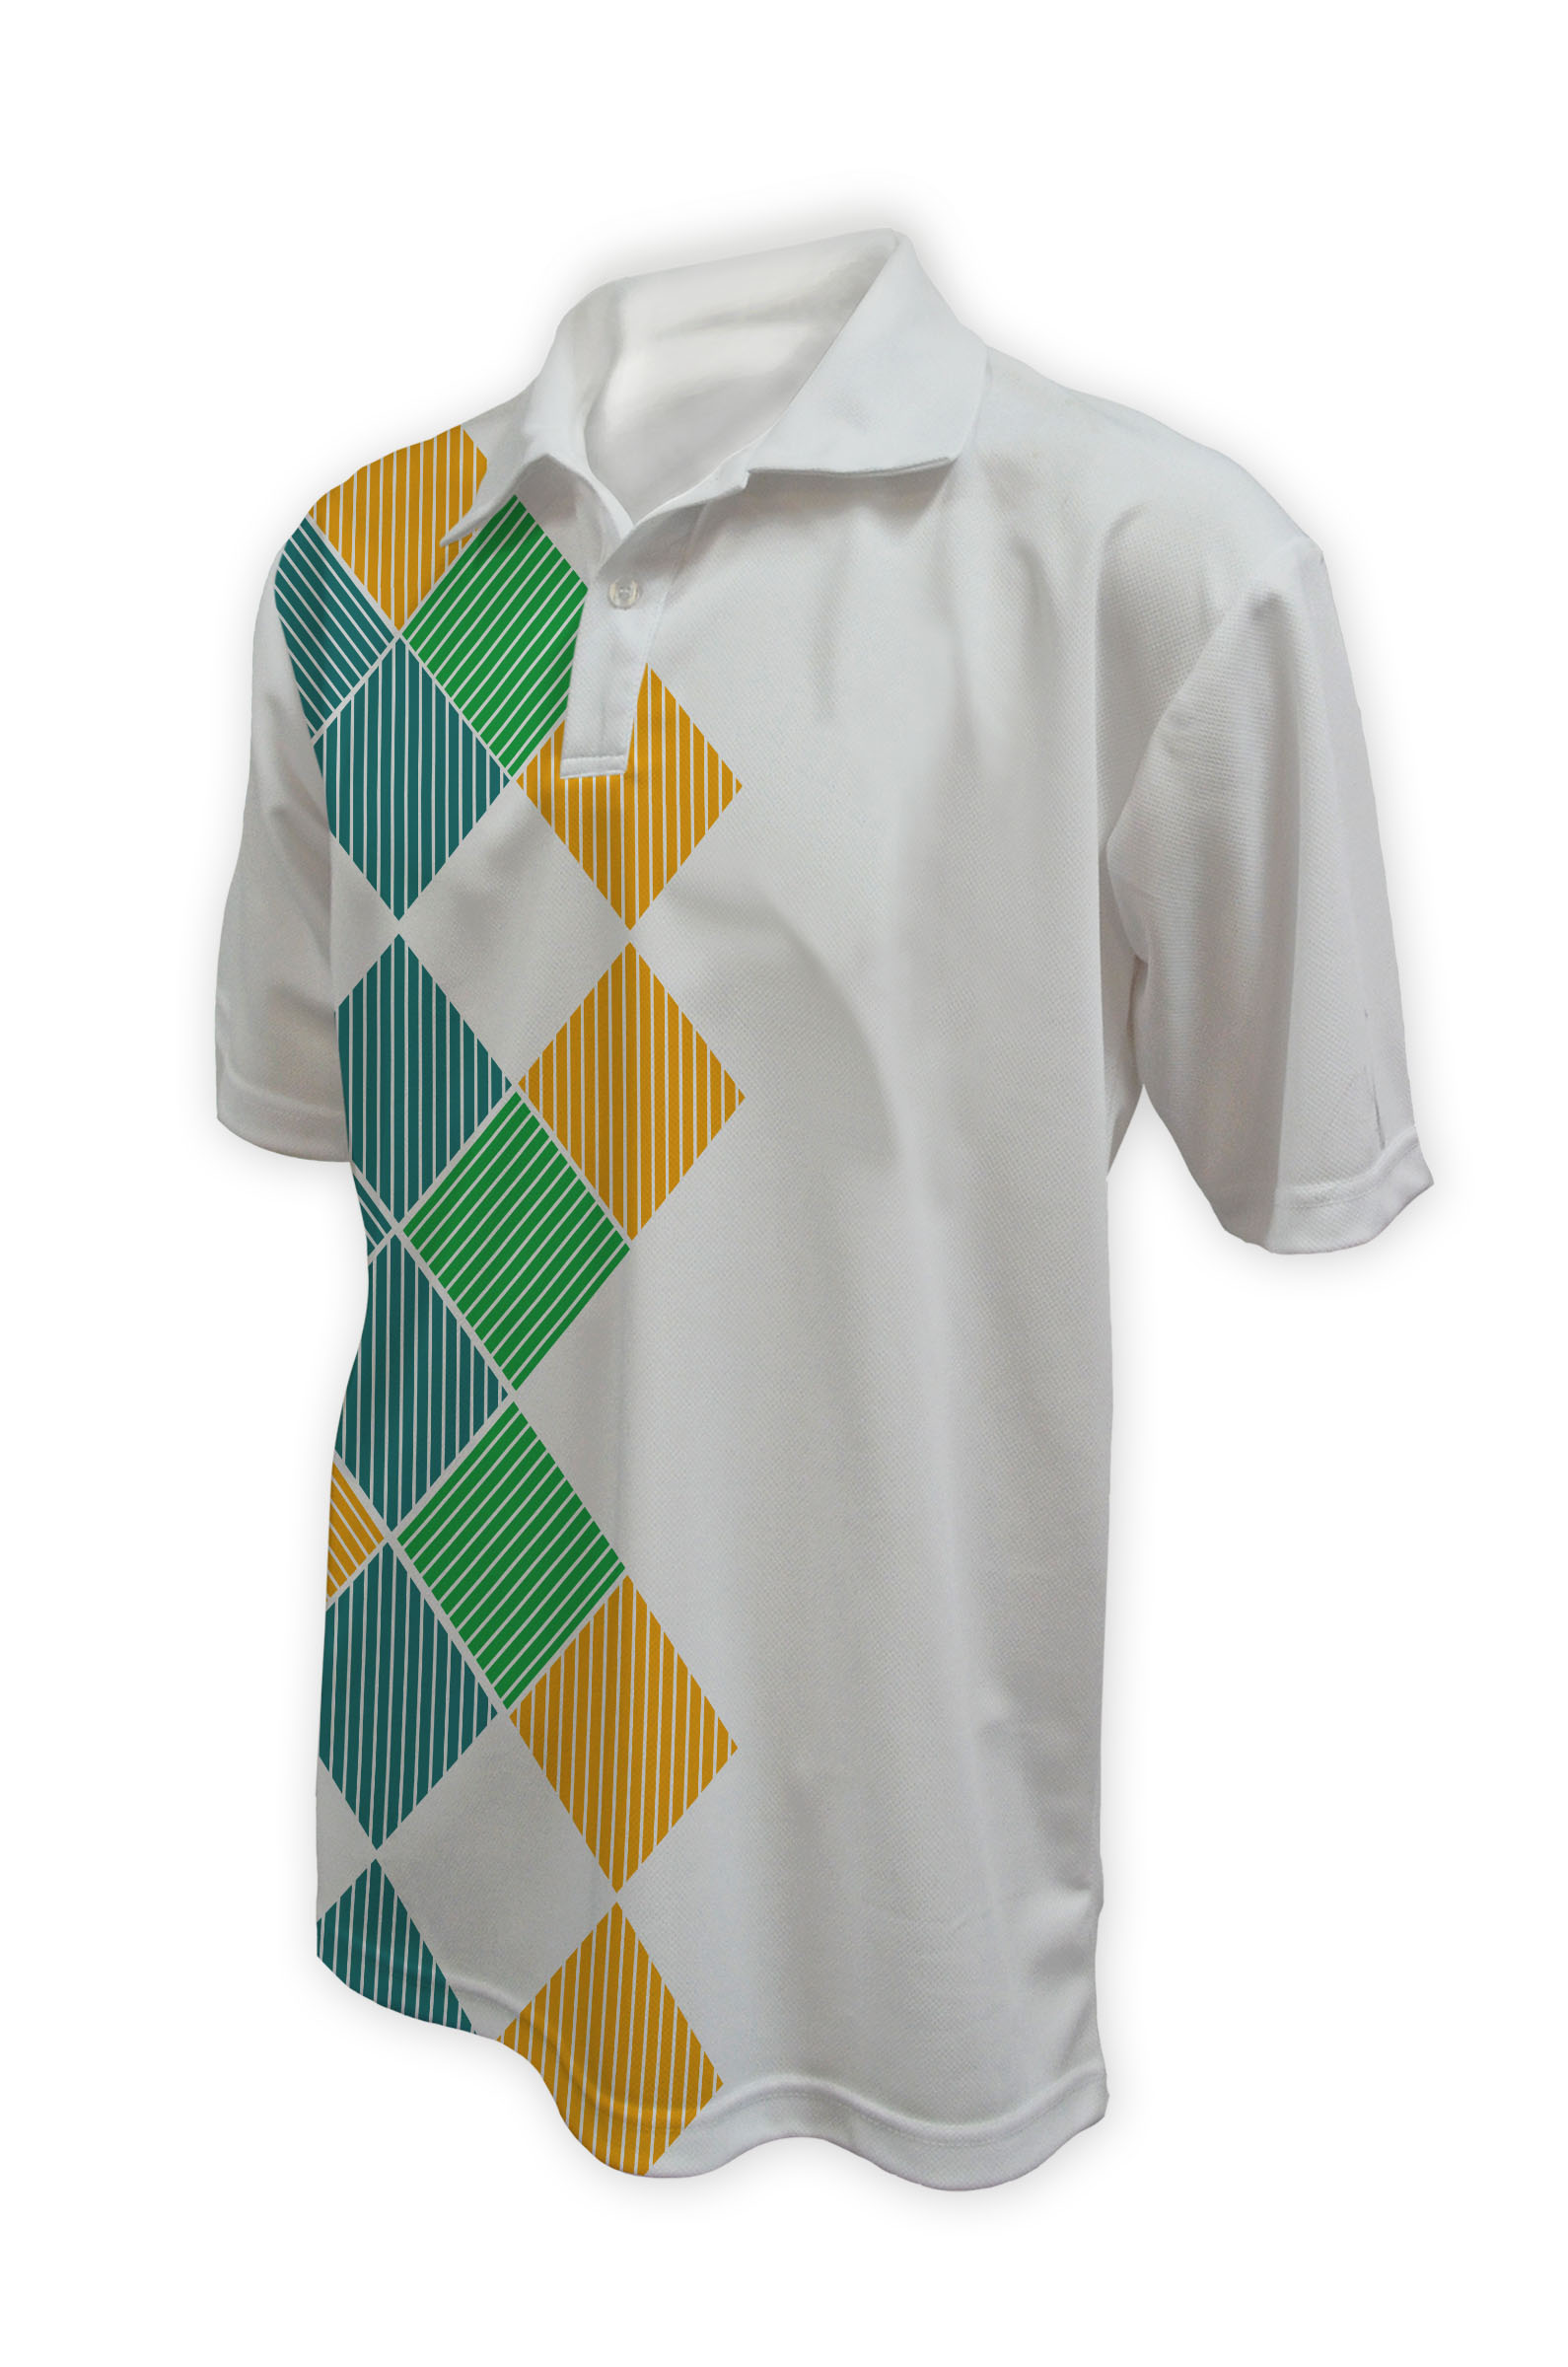 8044ac69 Sublimation Golf Polo - Fast Turnaround Custom Golf Gear ...